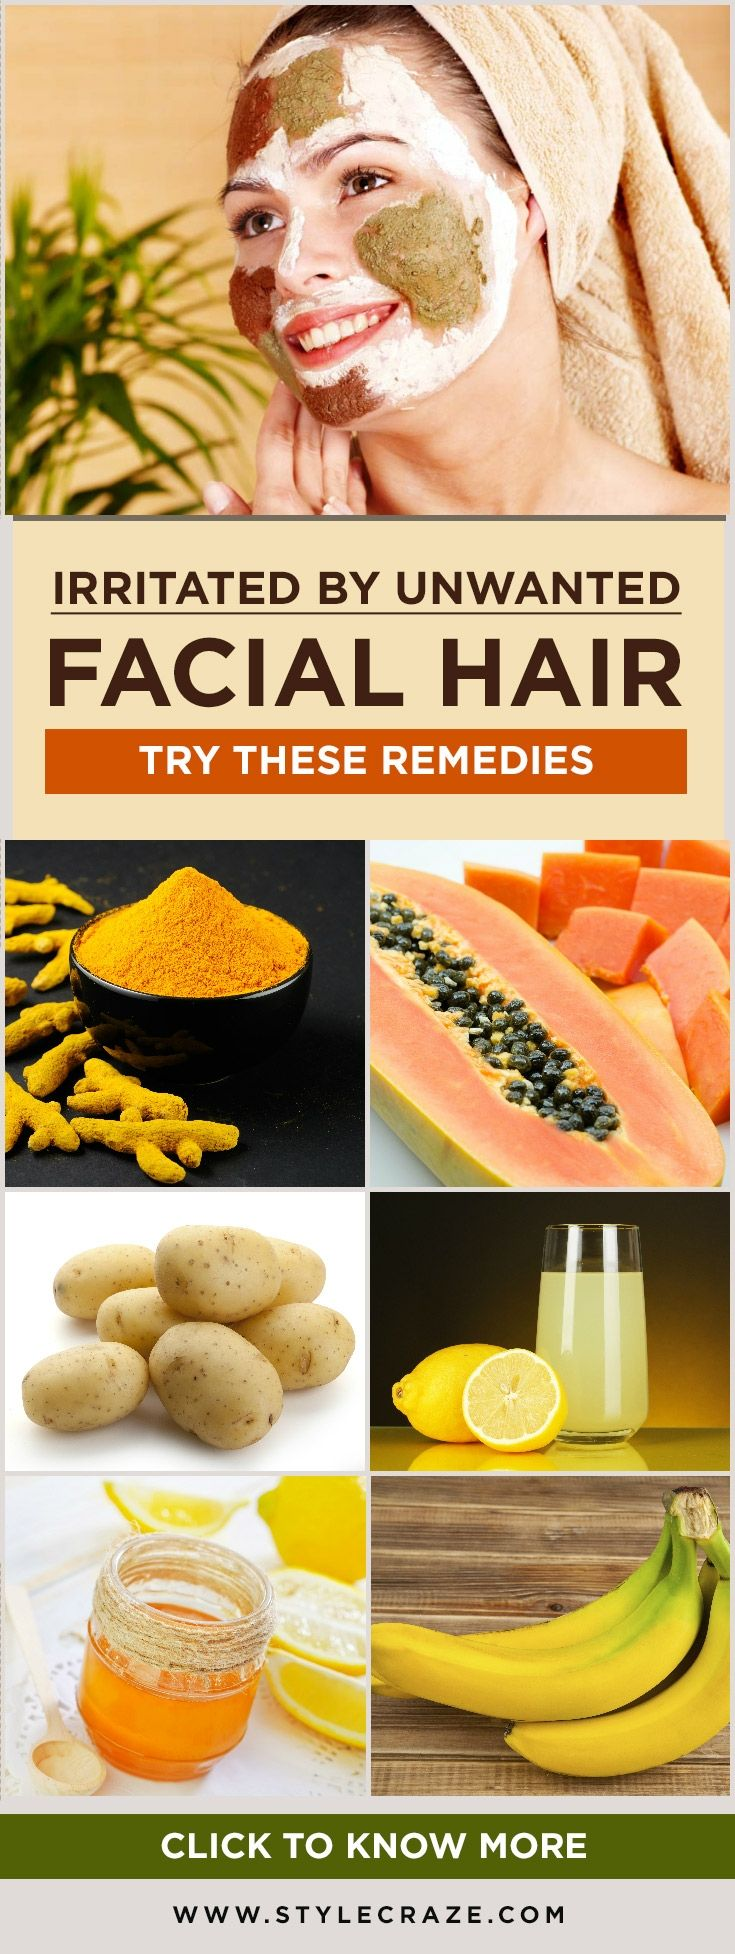 27 Easy Home Remedies To Get Rid Of Unwanted Facial Hair